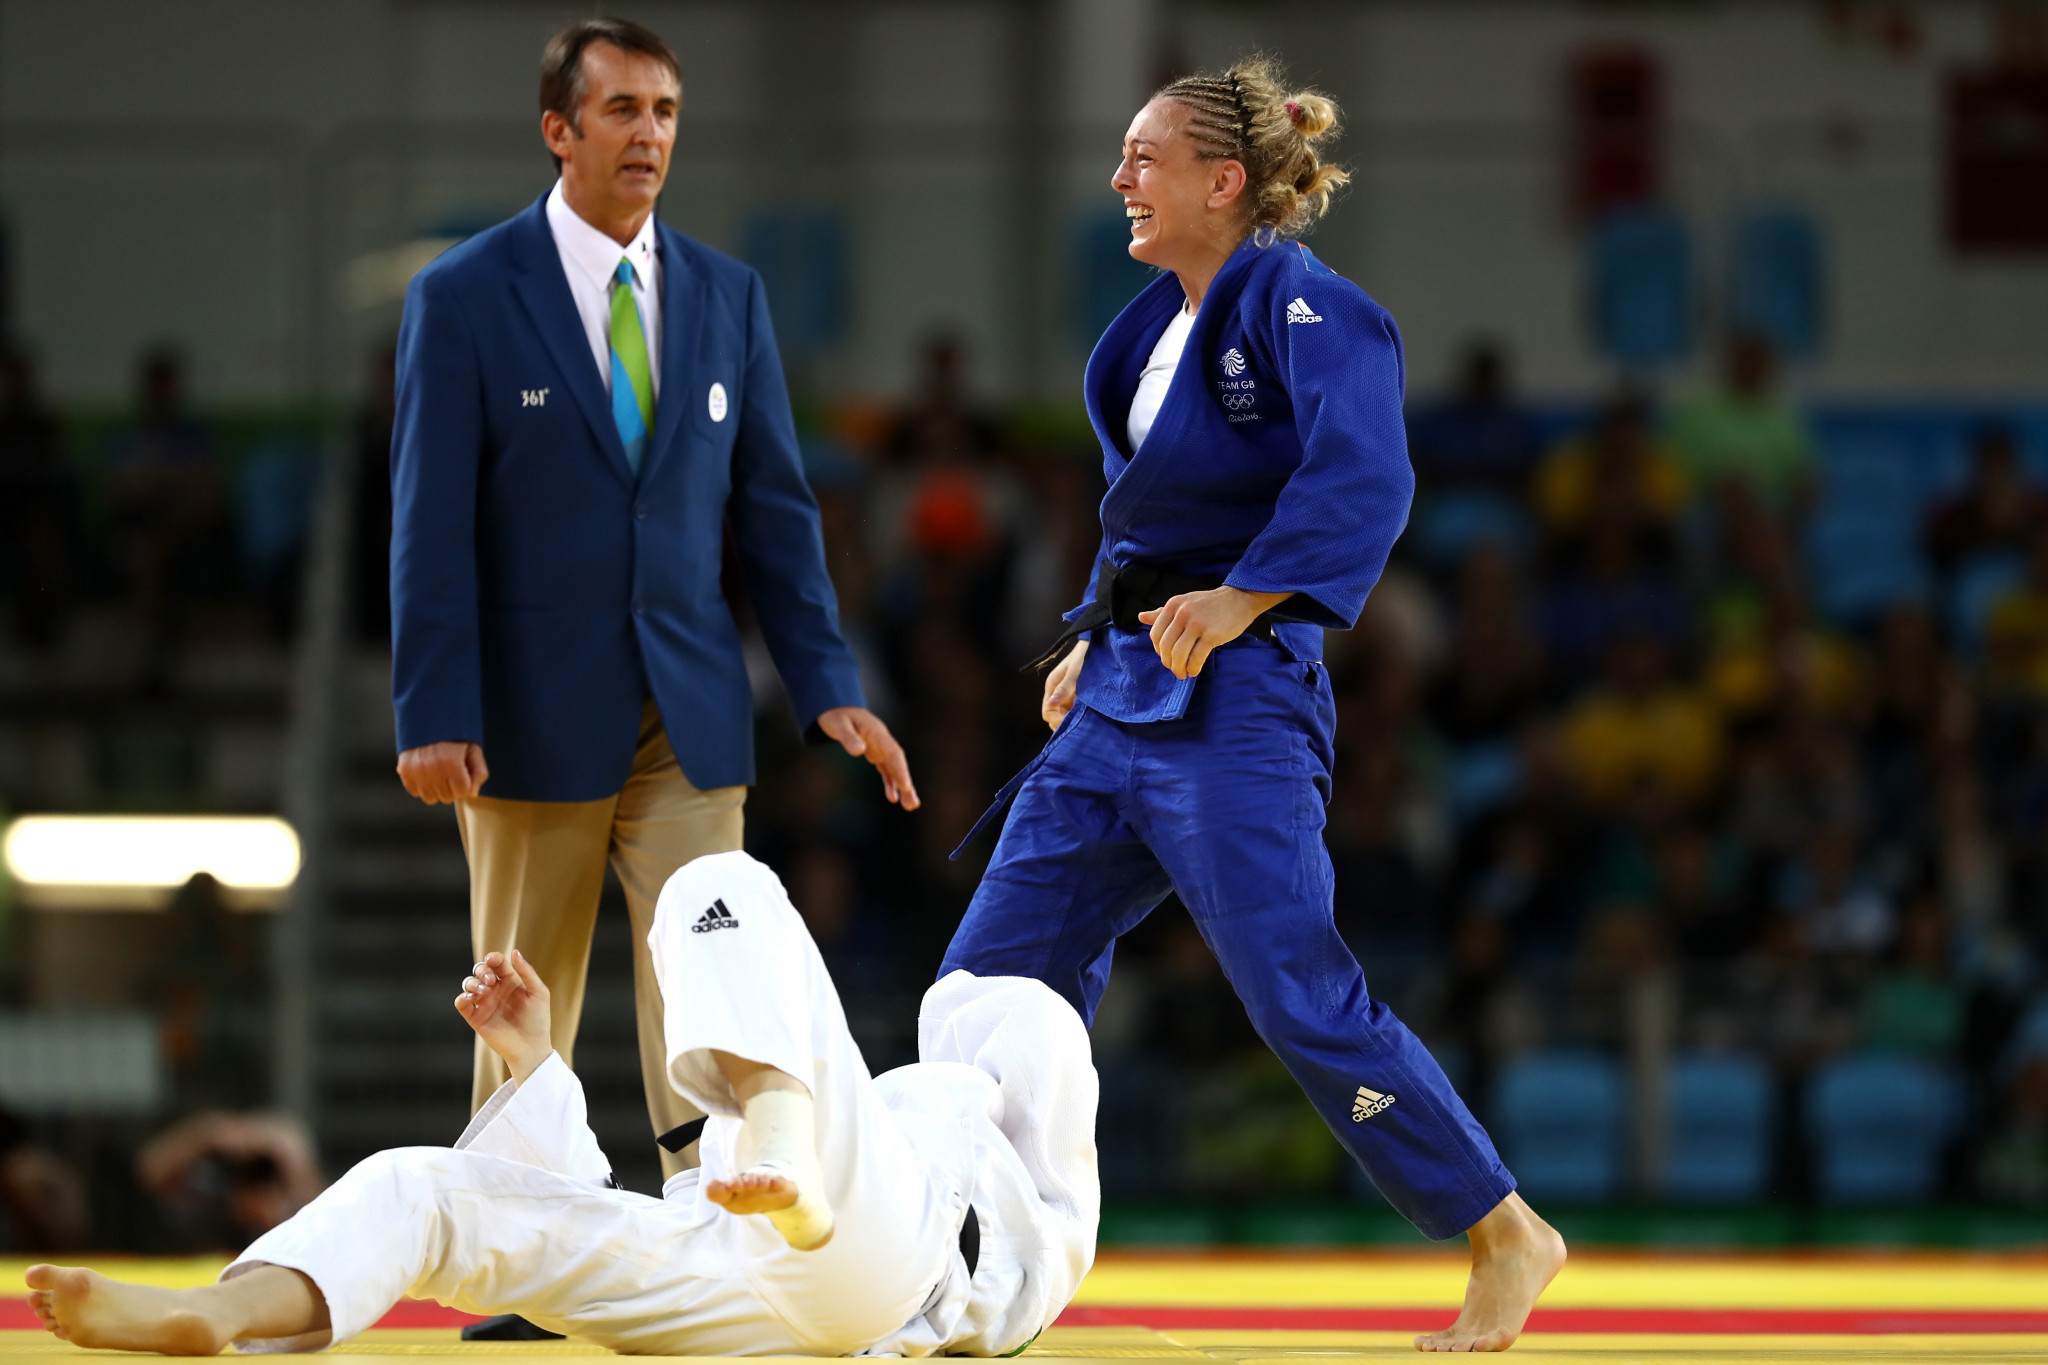 Rio 2016 Olympic bronze medallist Sally Conway is among the 10 athletes named on British Judo's team for next month's Paris Grand Slam ©Getty Images